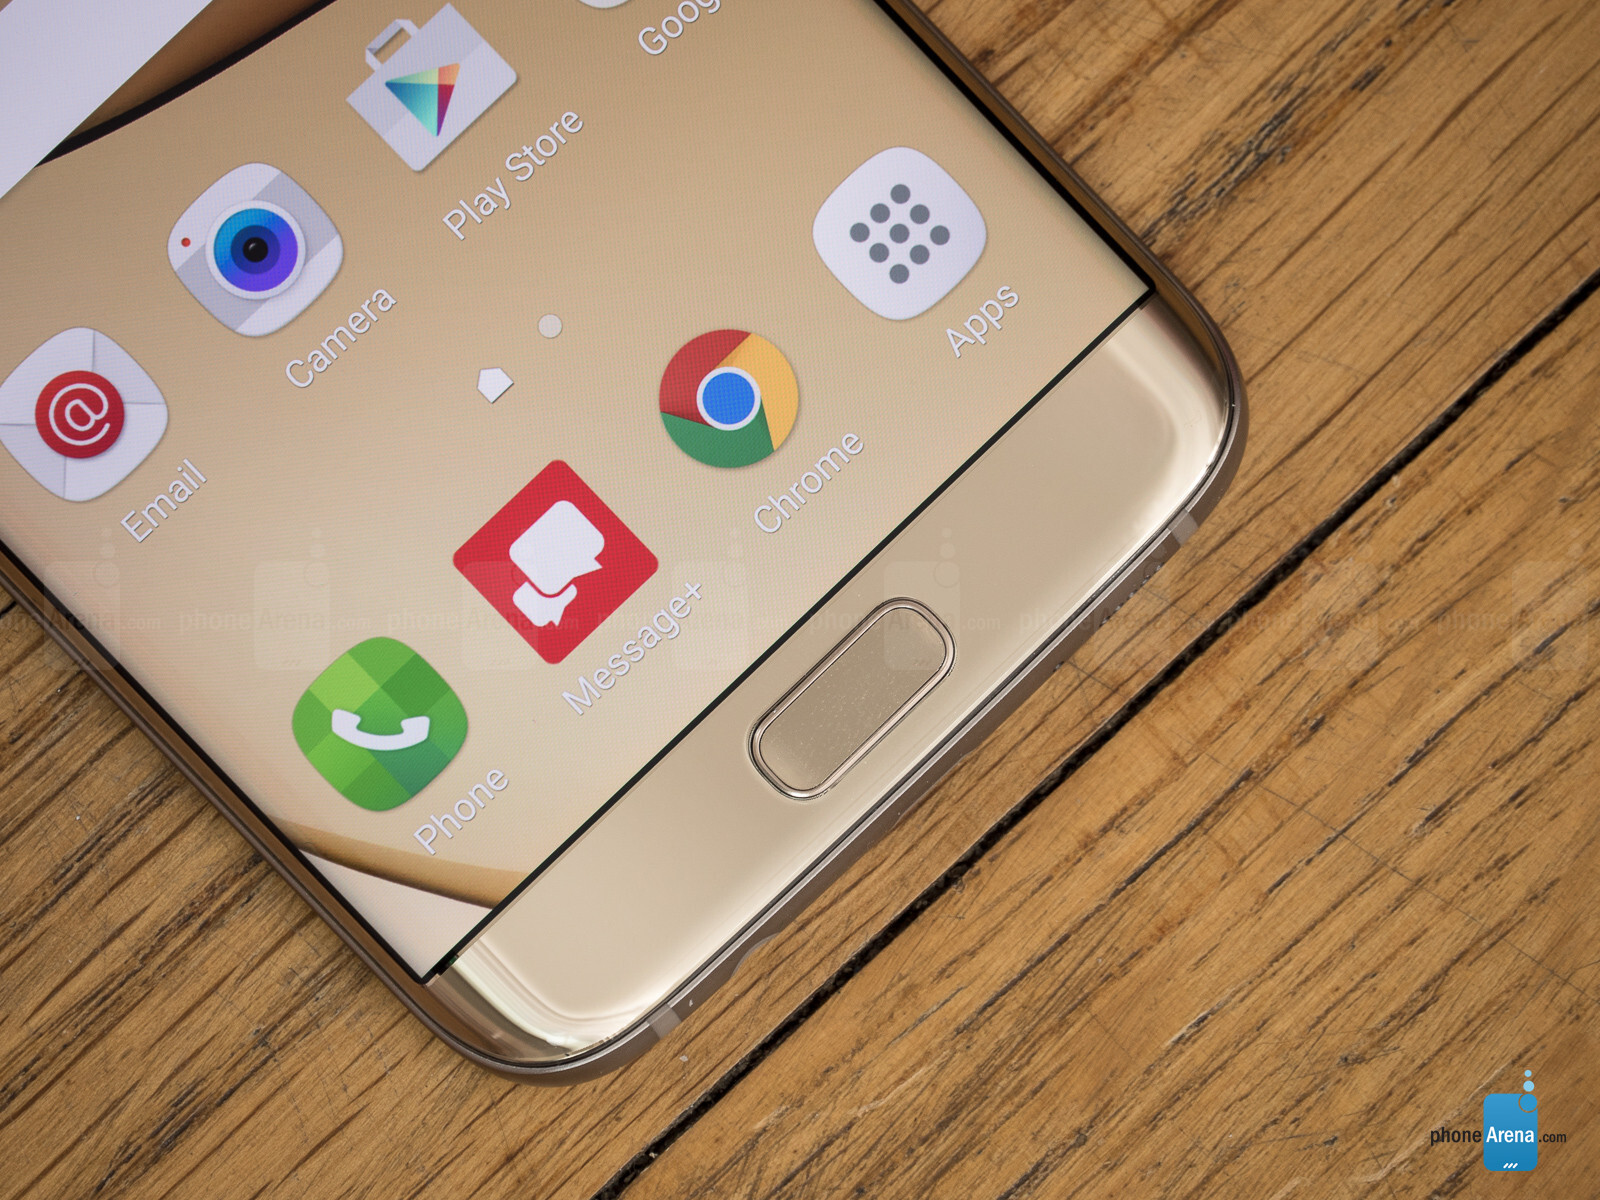 5 annoying Galaxy S7 edge problems and issues - PhoneArena